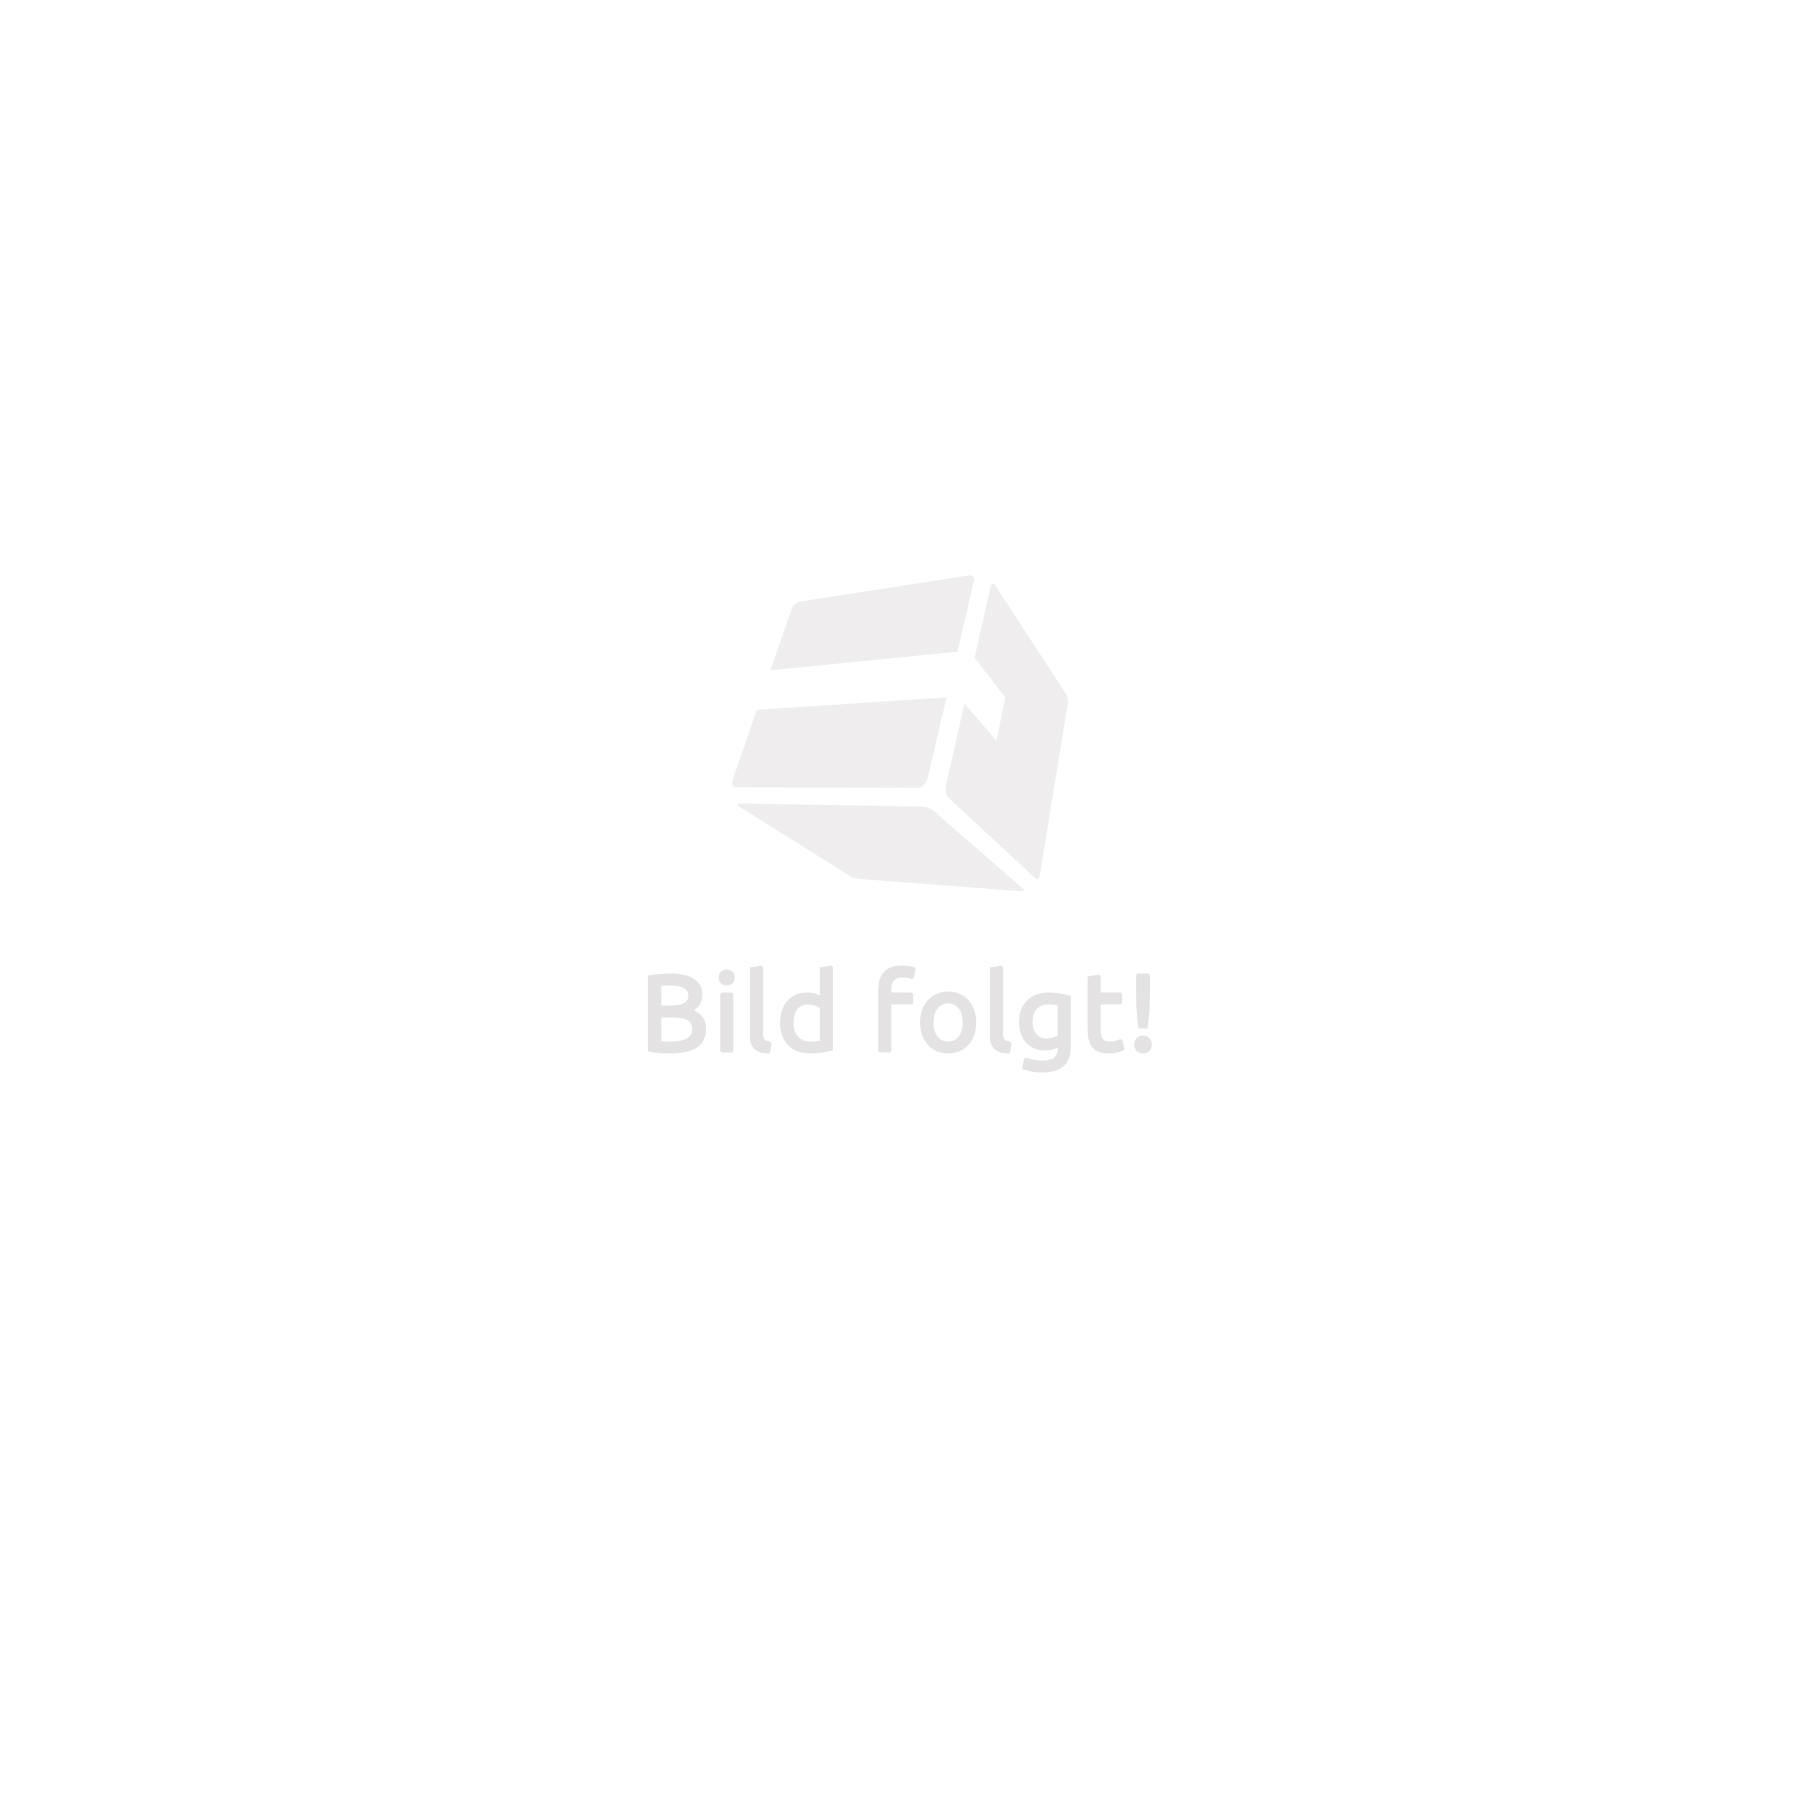 Table de massage 3 Zones Pliante 10 cm d'épaisseur beige